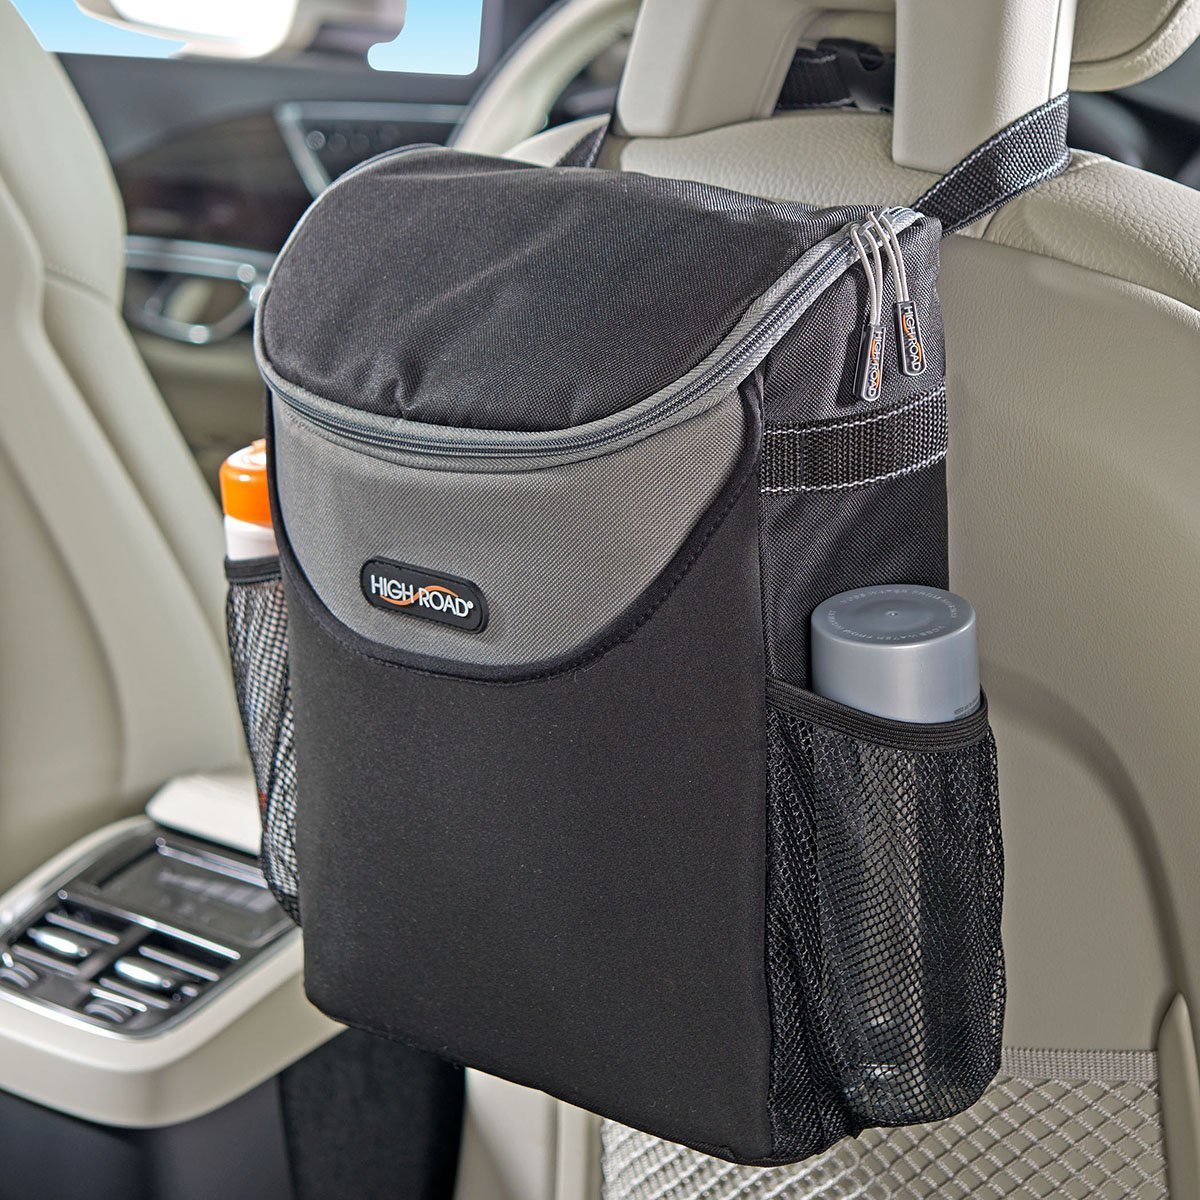 High Road SnackStash Car Seat Back Organizer and Cooler Bag by High Road